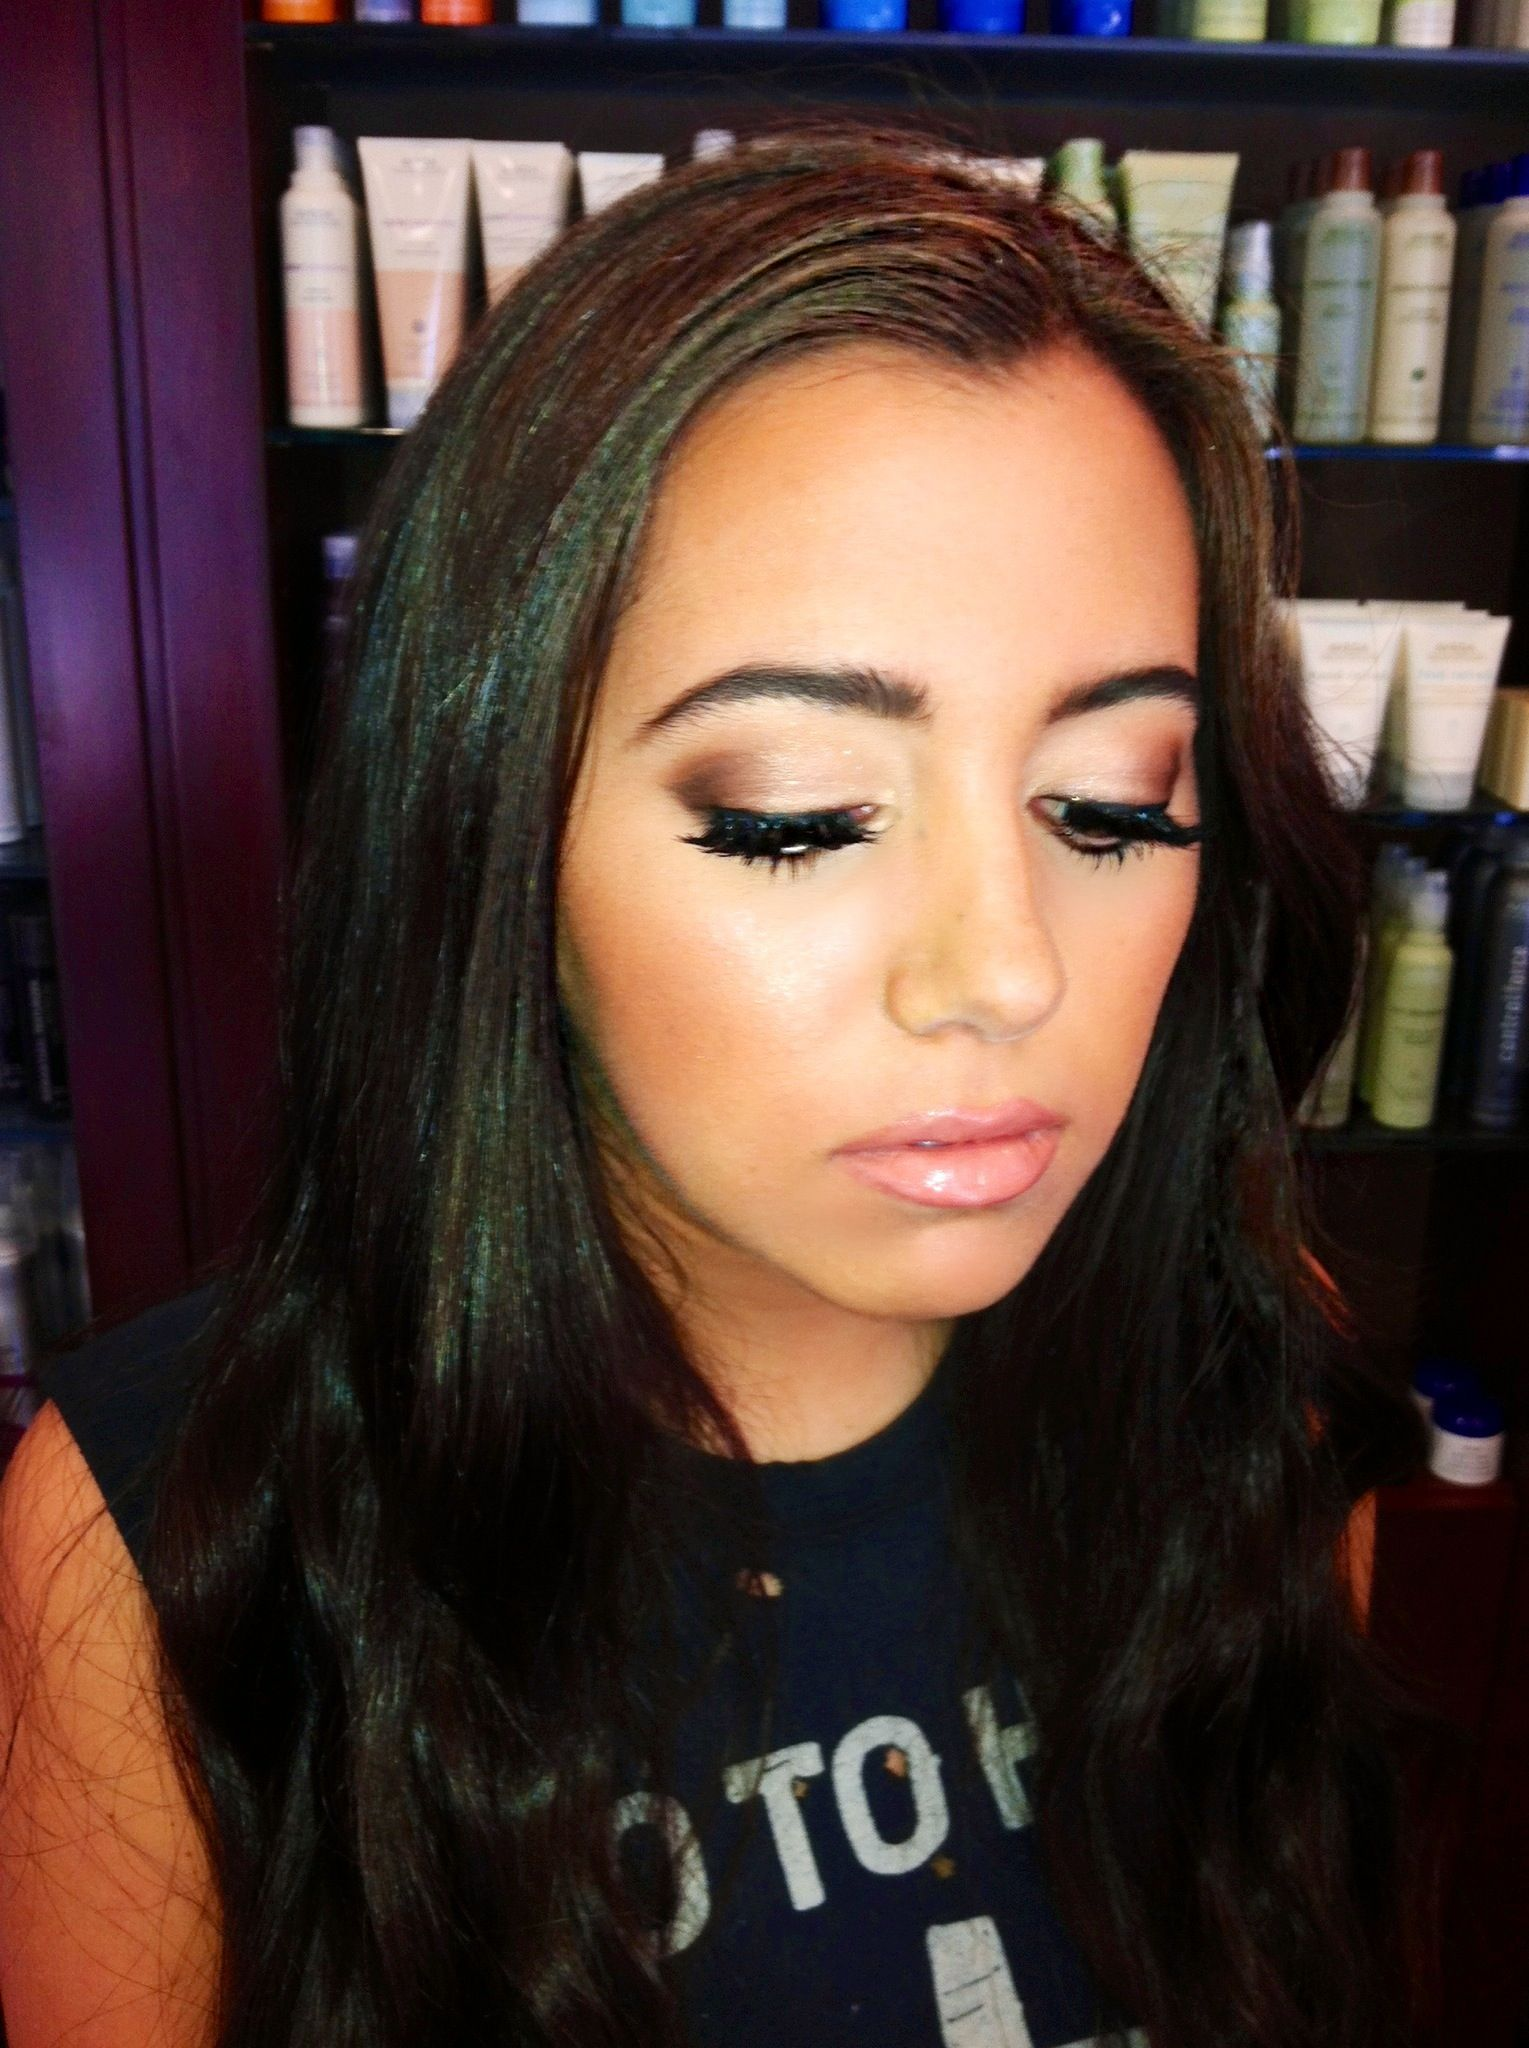 Wedding Makeup By Valerie Mchale Lashes Weddingmakeup Wedding Makeup Wedding Make Up Wedding